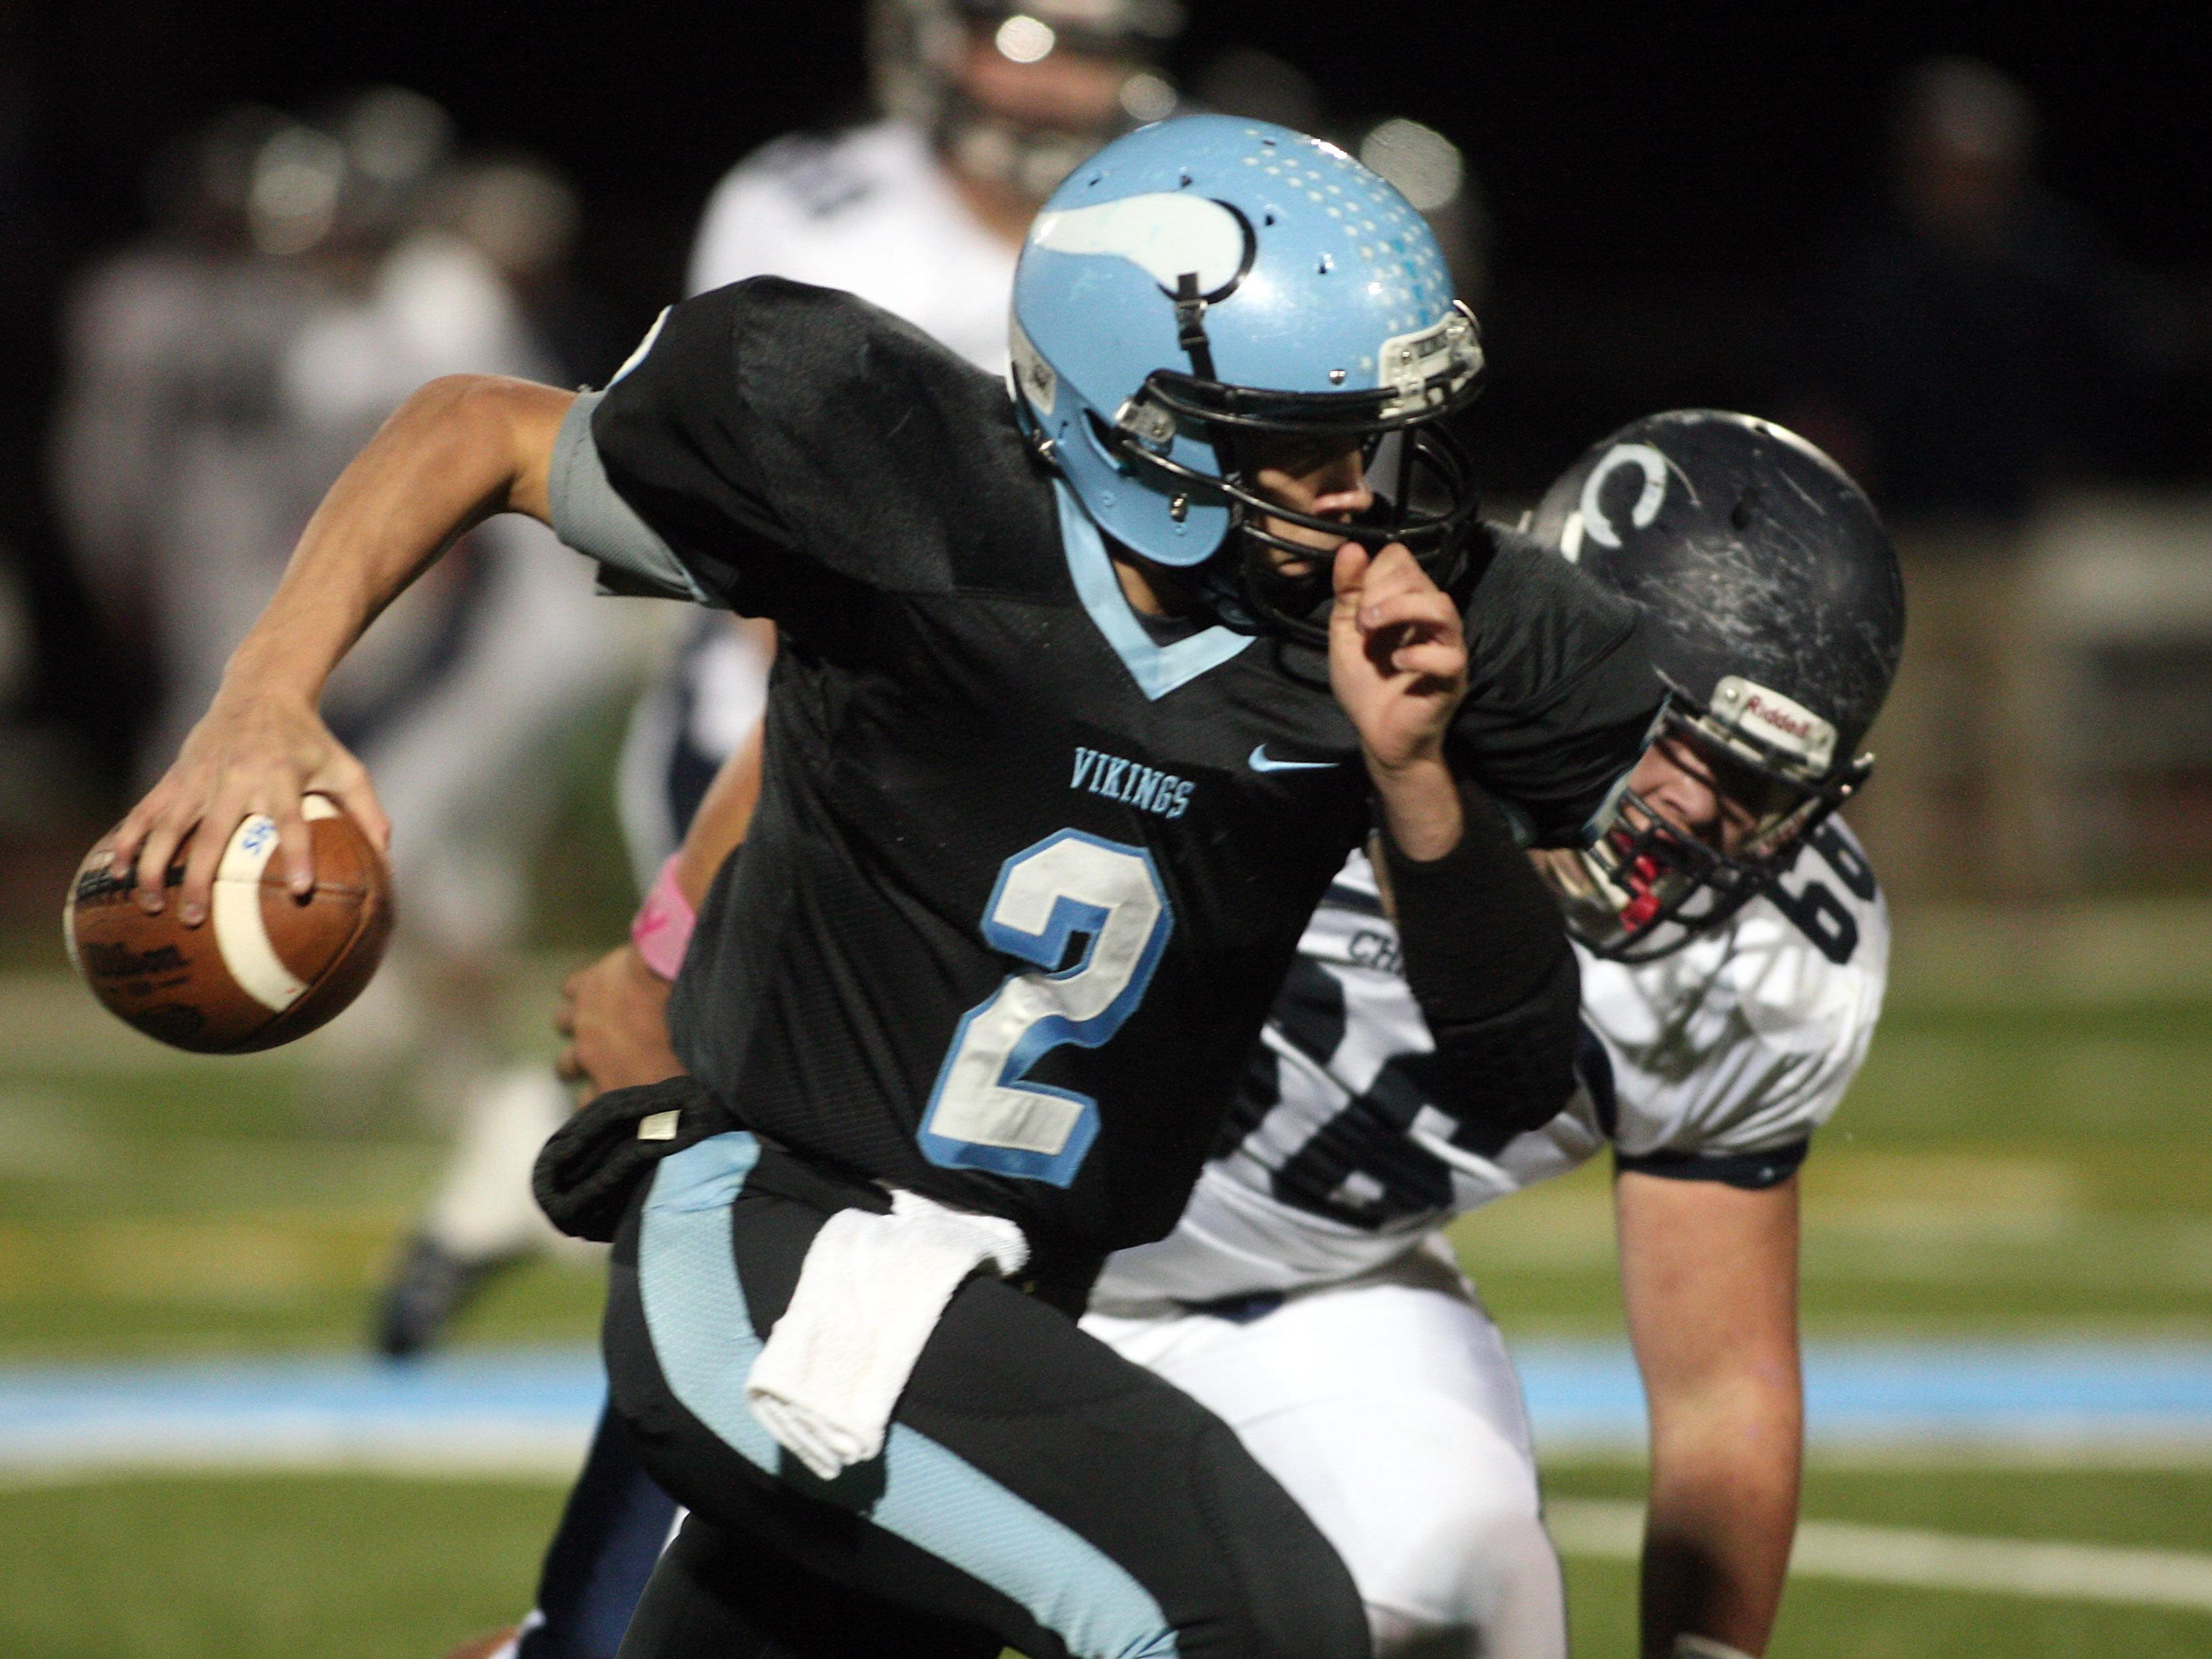 Parsippany Hills quarterback Nick Verducci runs to the end zone on a 57 yard keeper vs. Chatham in a showdown with playoff implications. October 30, 2015, Parsippany, NJ.